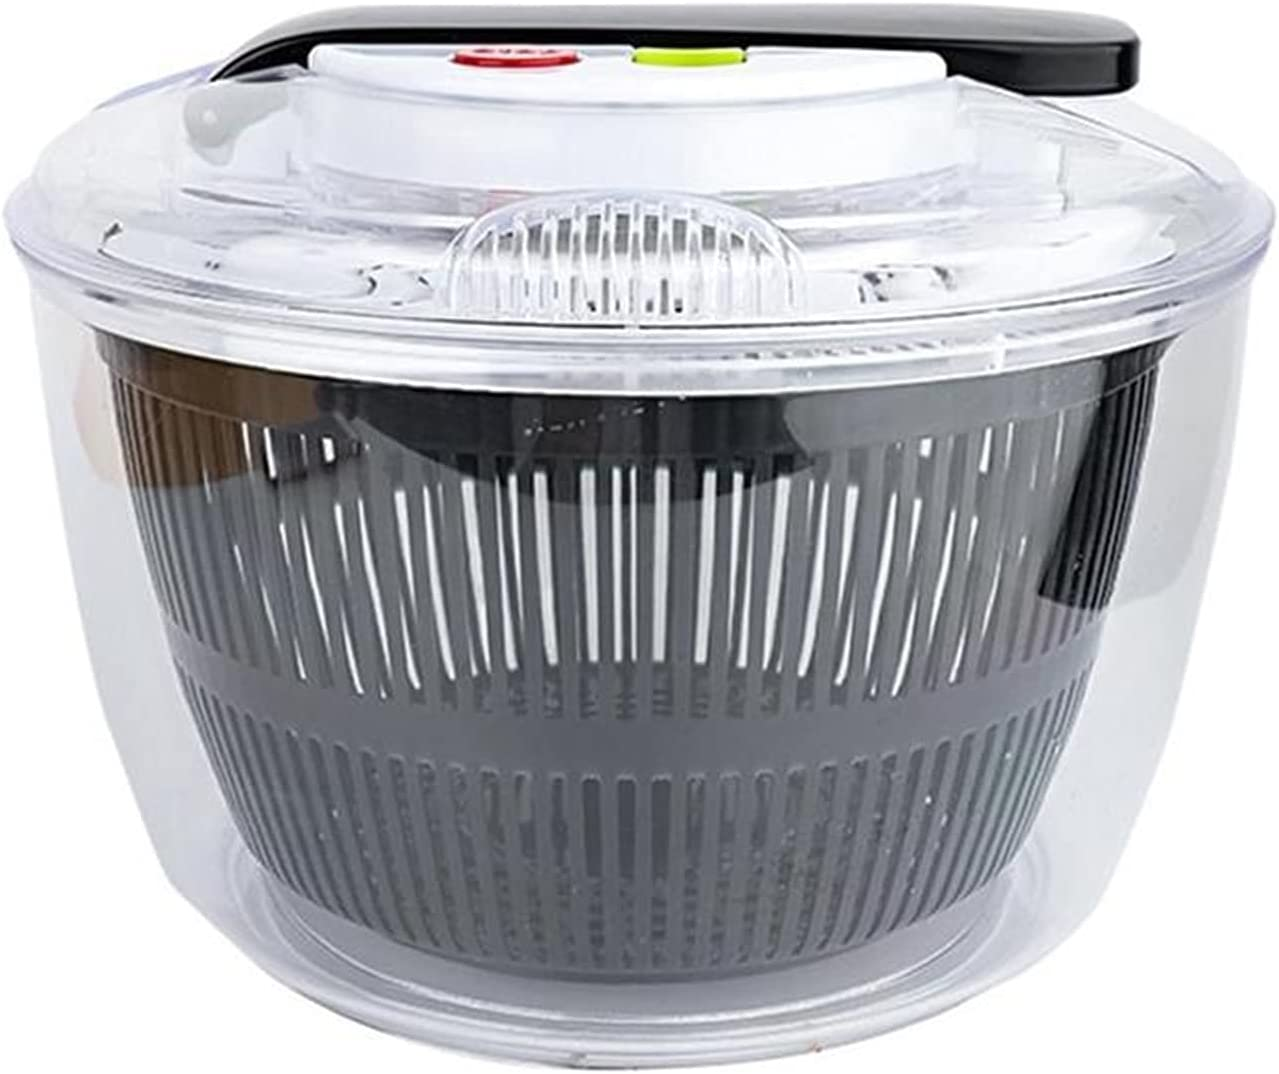 Salad Now free shipping Spinner 1pc Large Capacity Type Dehydrator Vegetable Press 2021